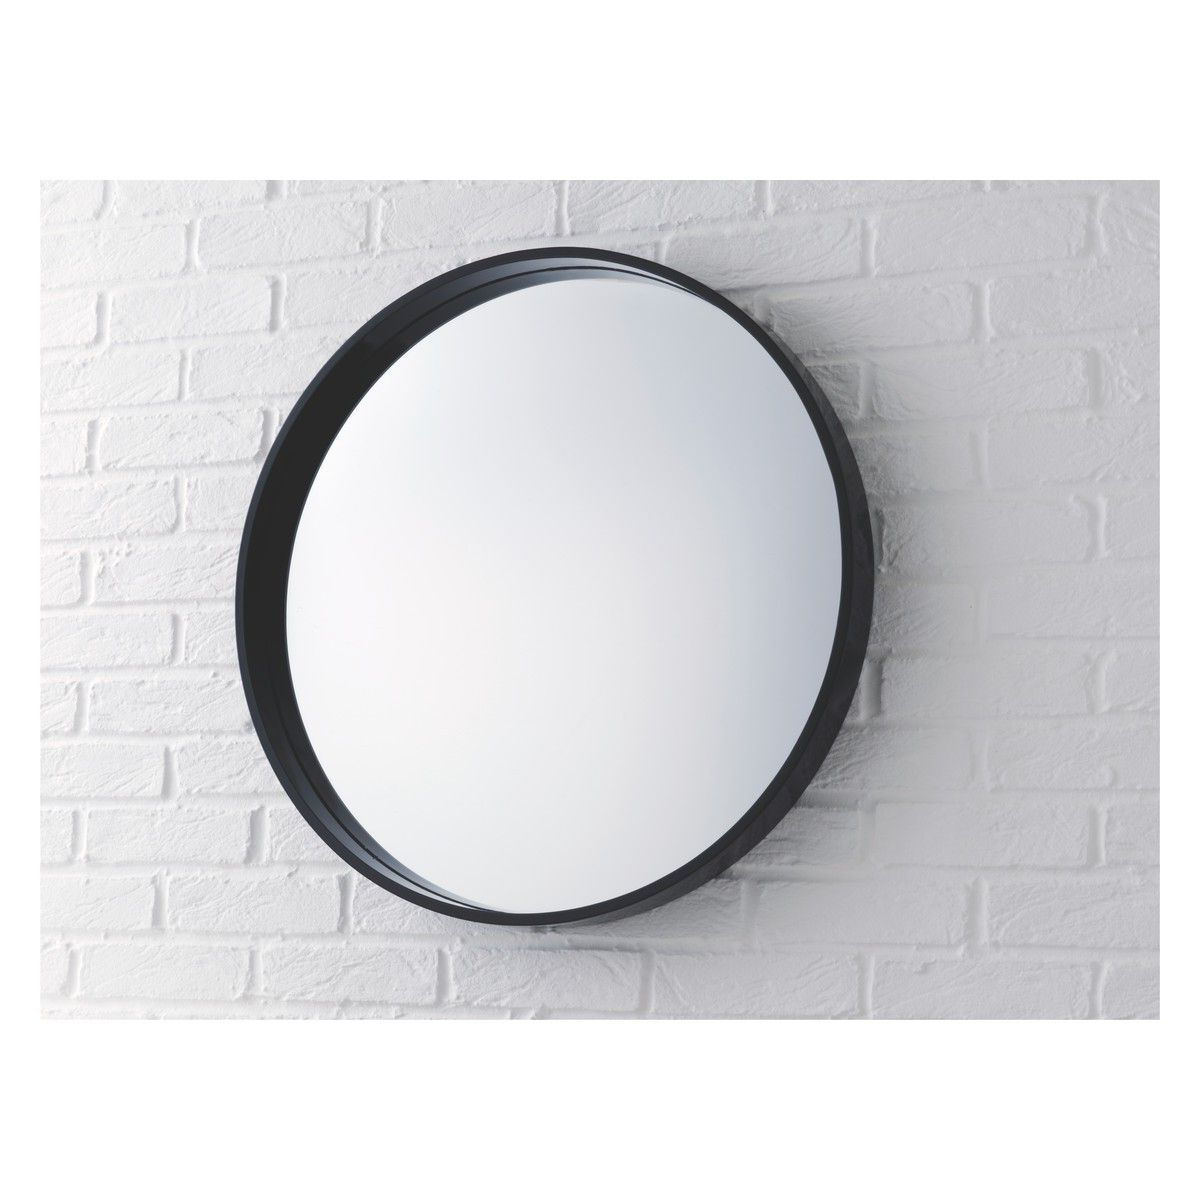 Large Black Framed Wall Mirrors In Most Current Aimee Black High Gloss Round Wall Mirror D65cm (View 15 of 20)